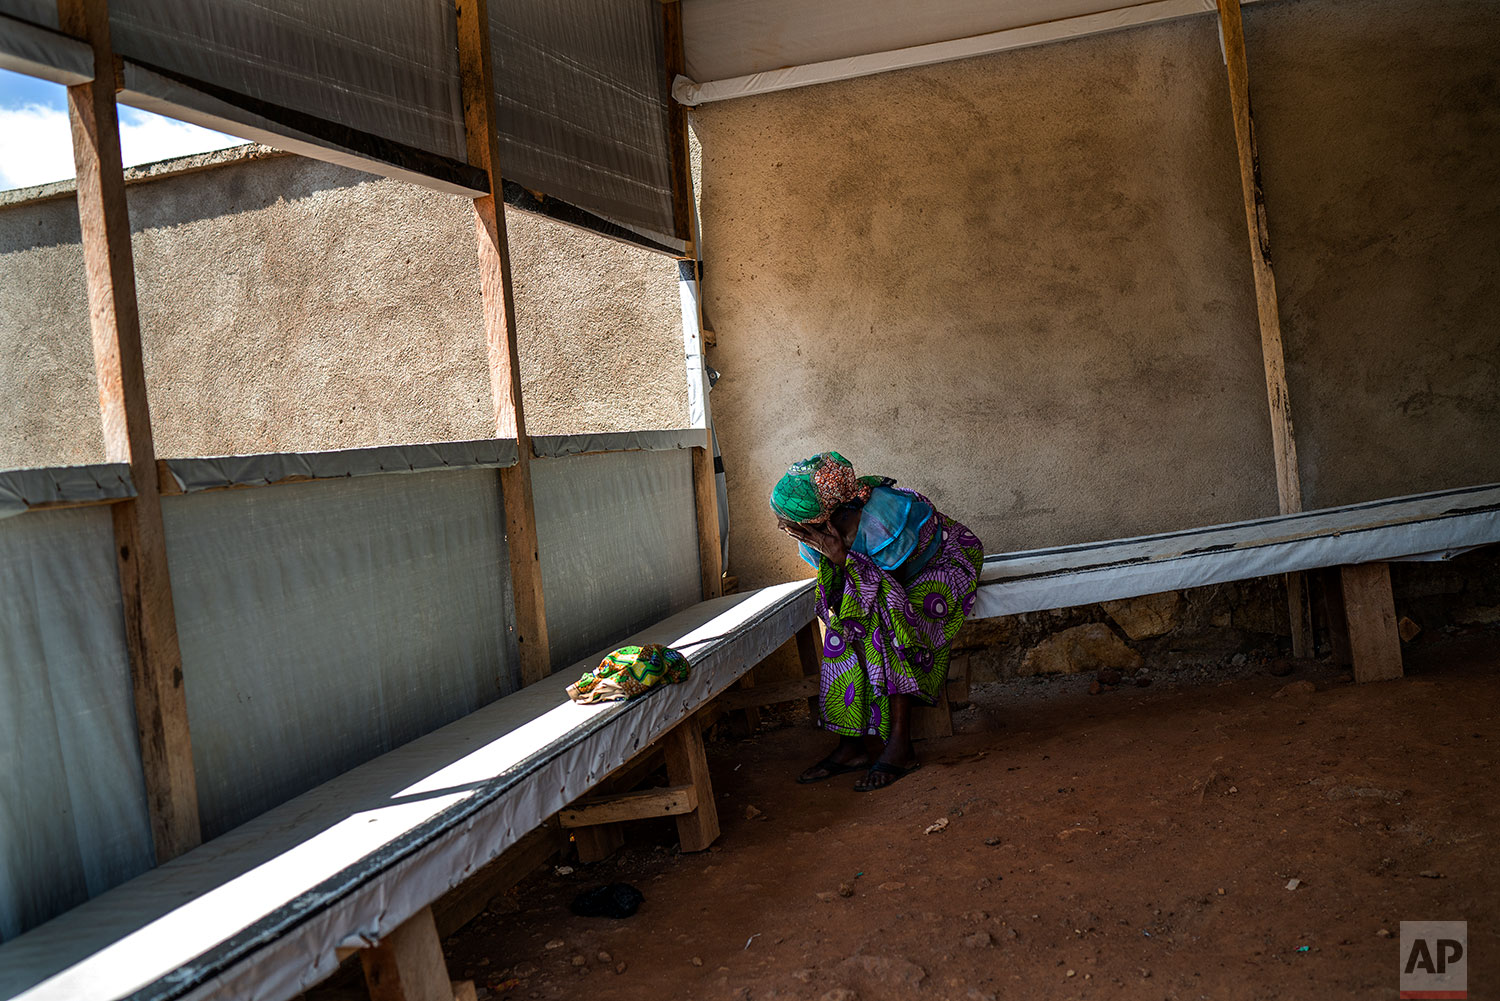 In this July 14, 2019 photo, a woman waits at the morgue for the body of her relative to be cleared for burial in Beni, Congo DRC. (AP Photo/Jerome Delay)